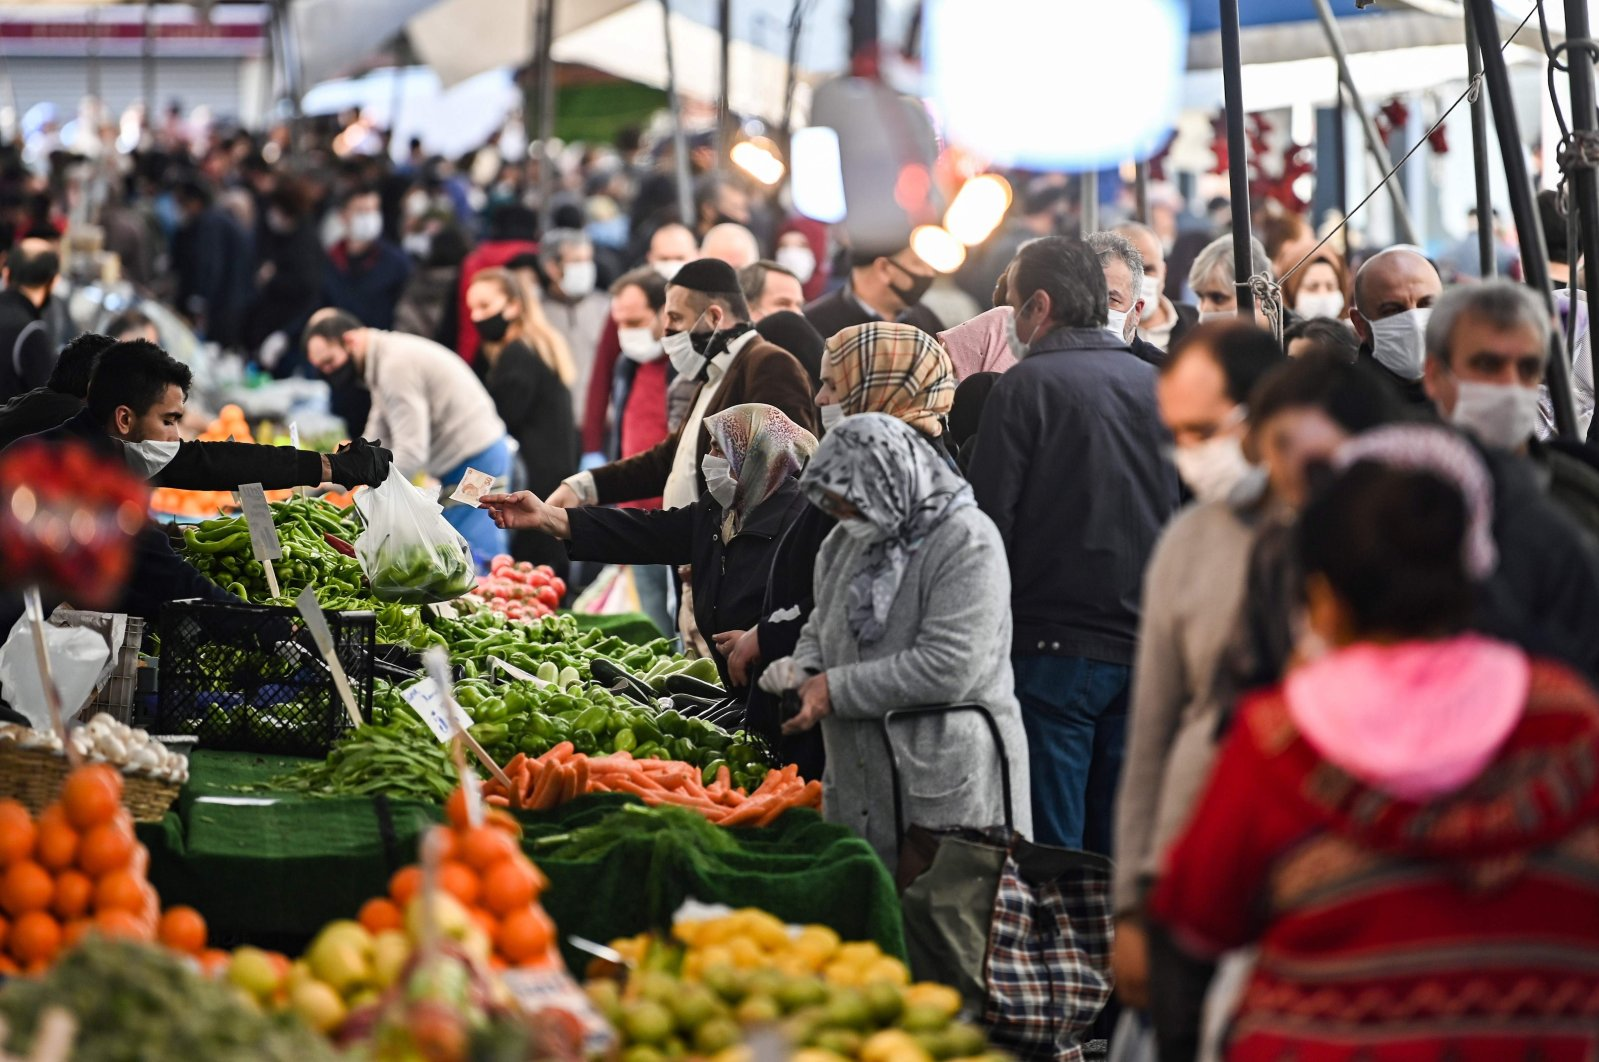 People wearing face masks do their grocery shopping at a market in Bayrampaşa, Istanbul, Turkey, April 17, 2020. (AFP Photo)